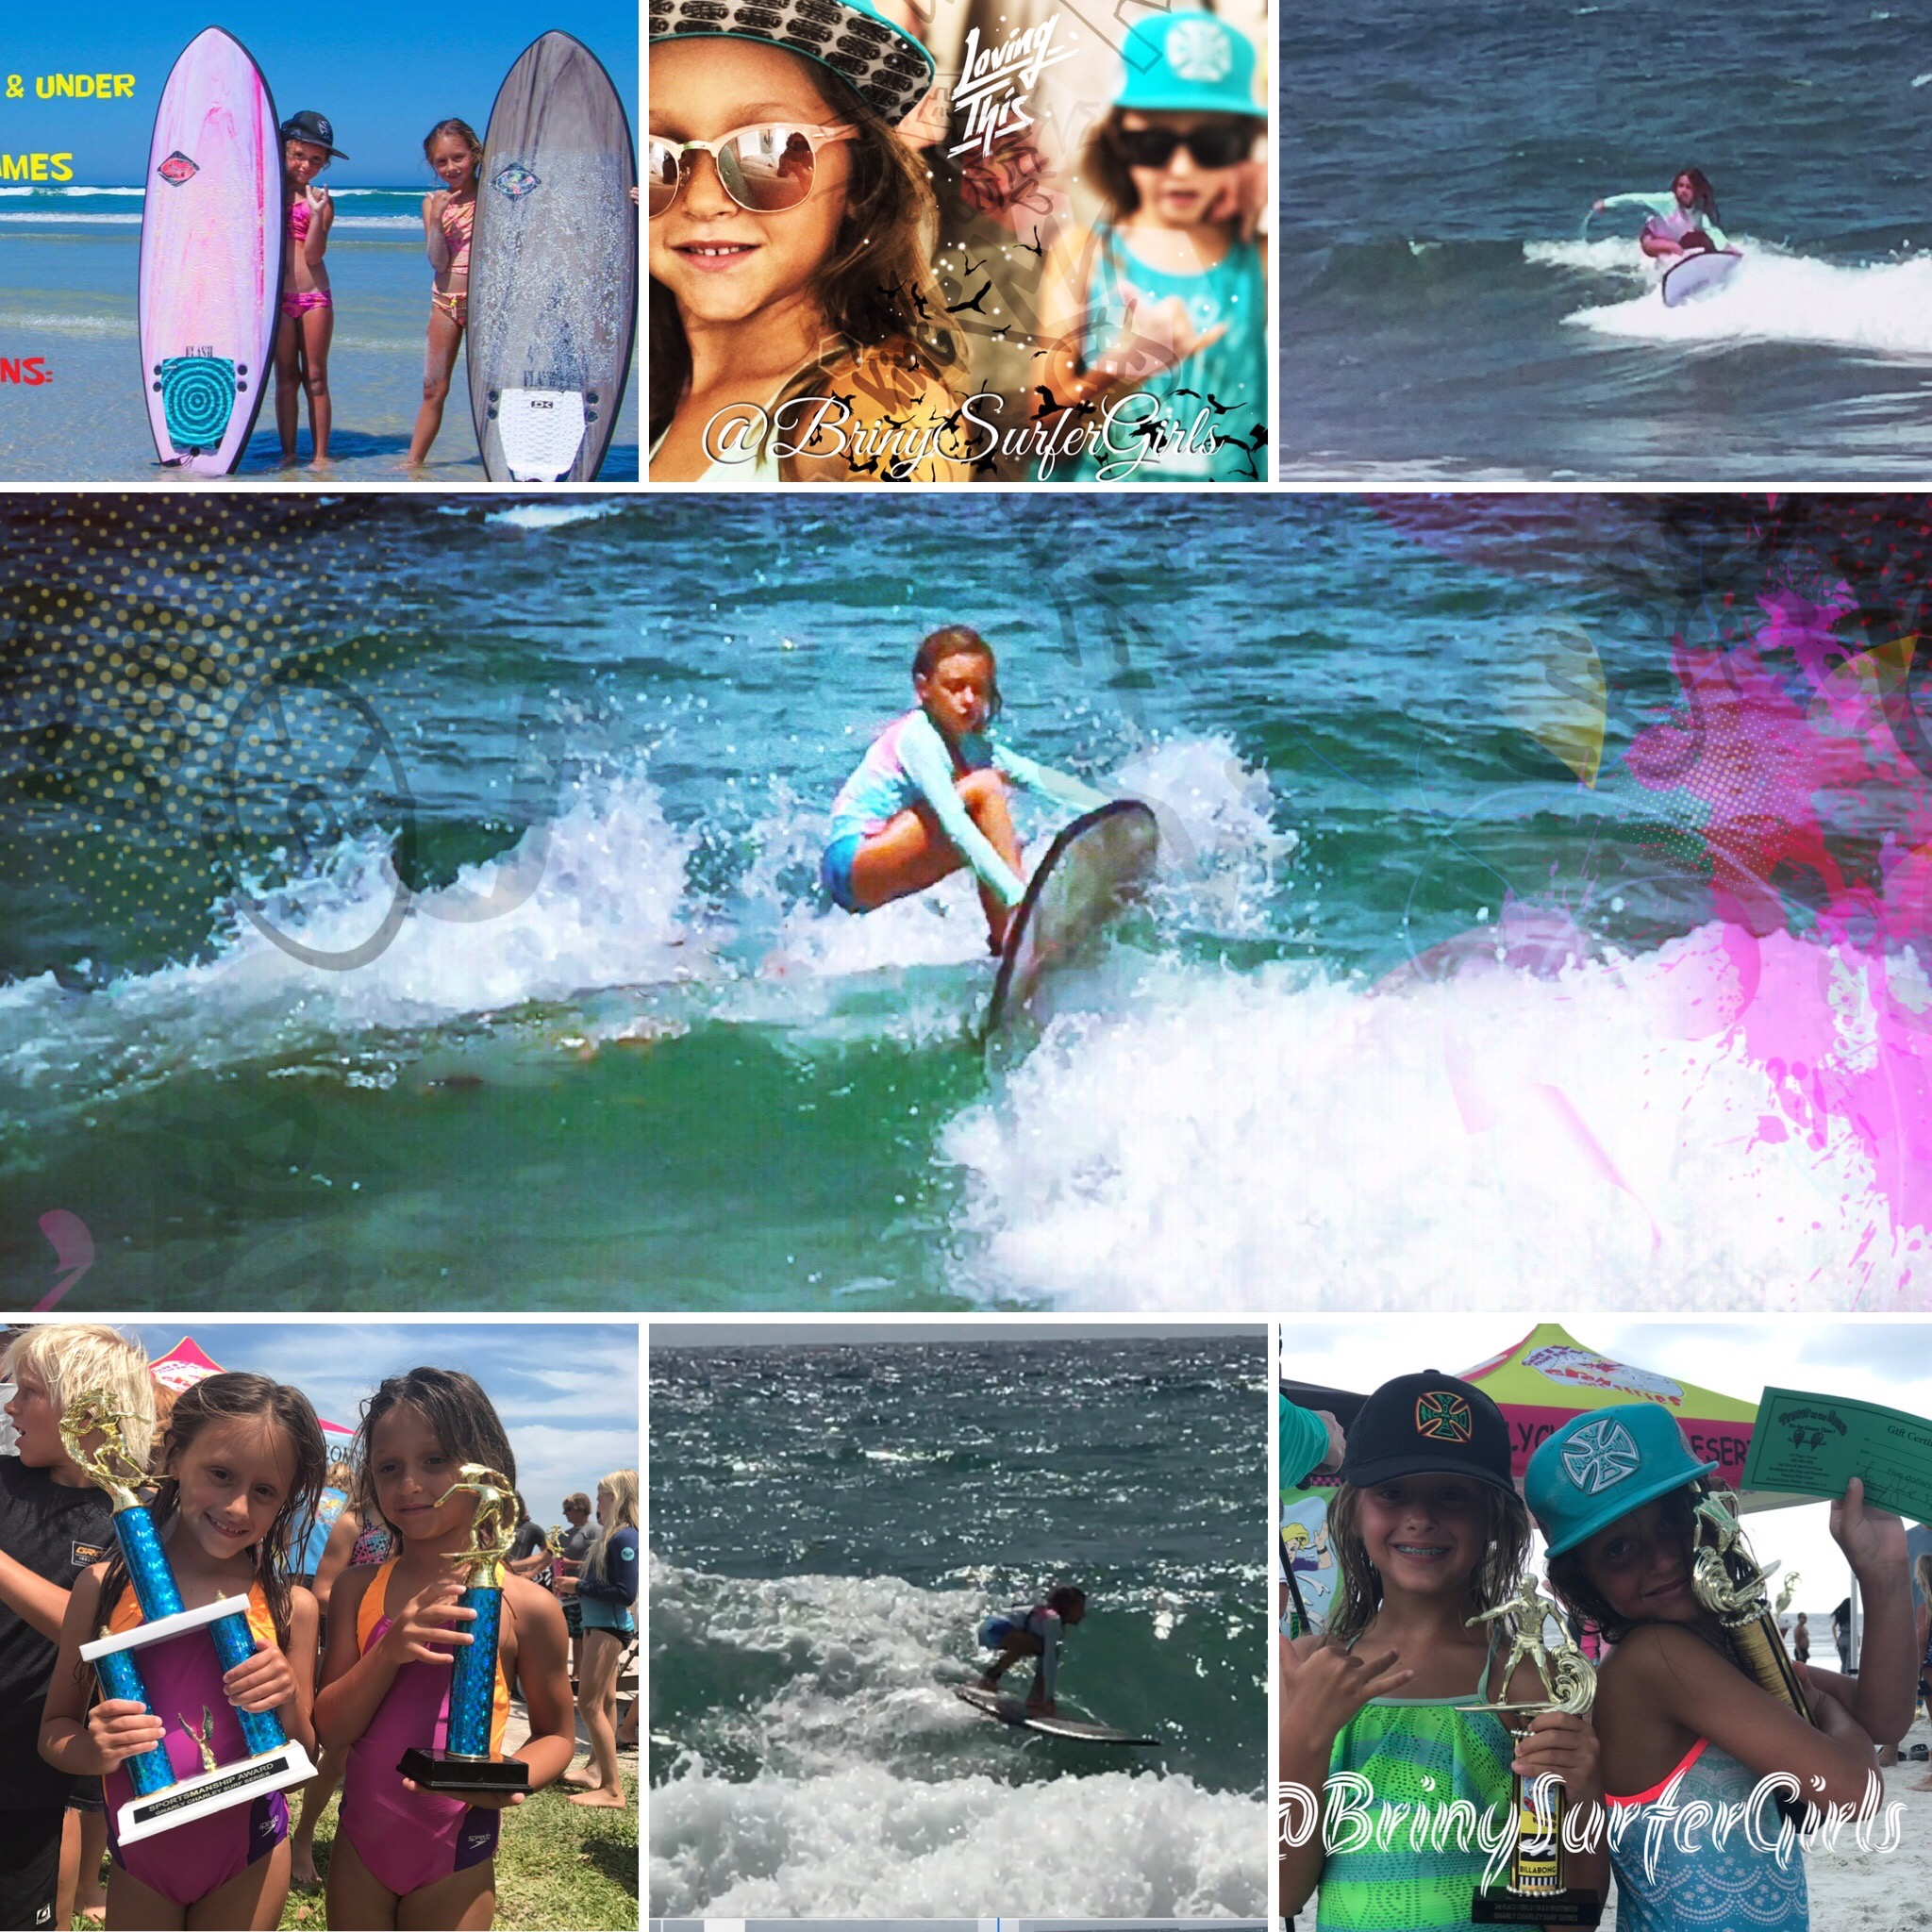 Arena Family Surf Club - Join The Fun!